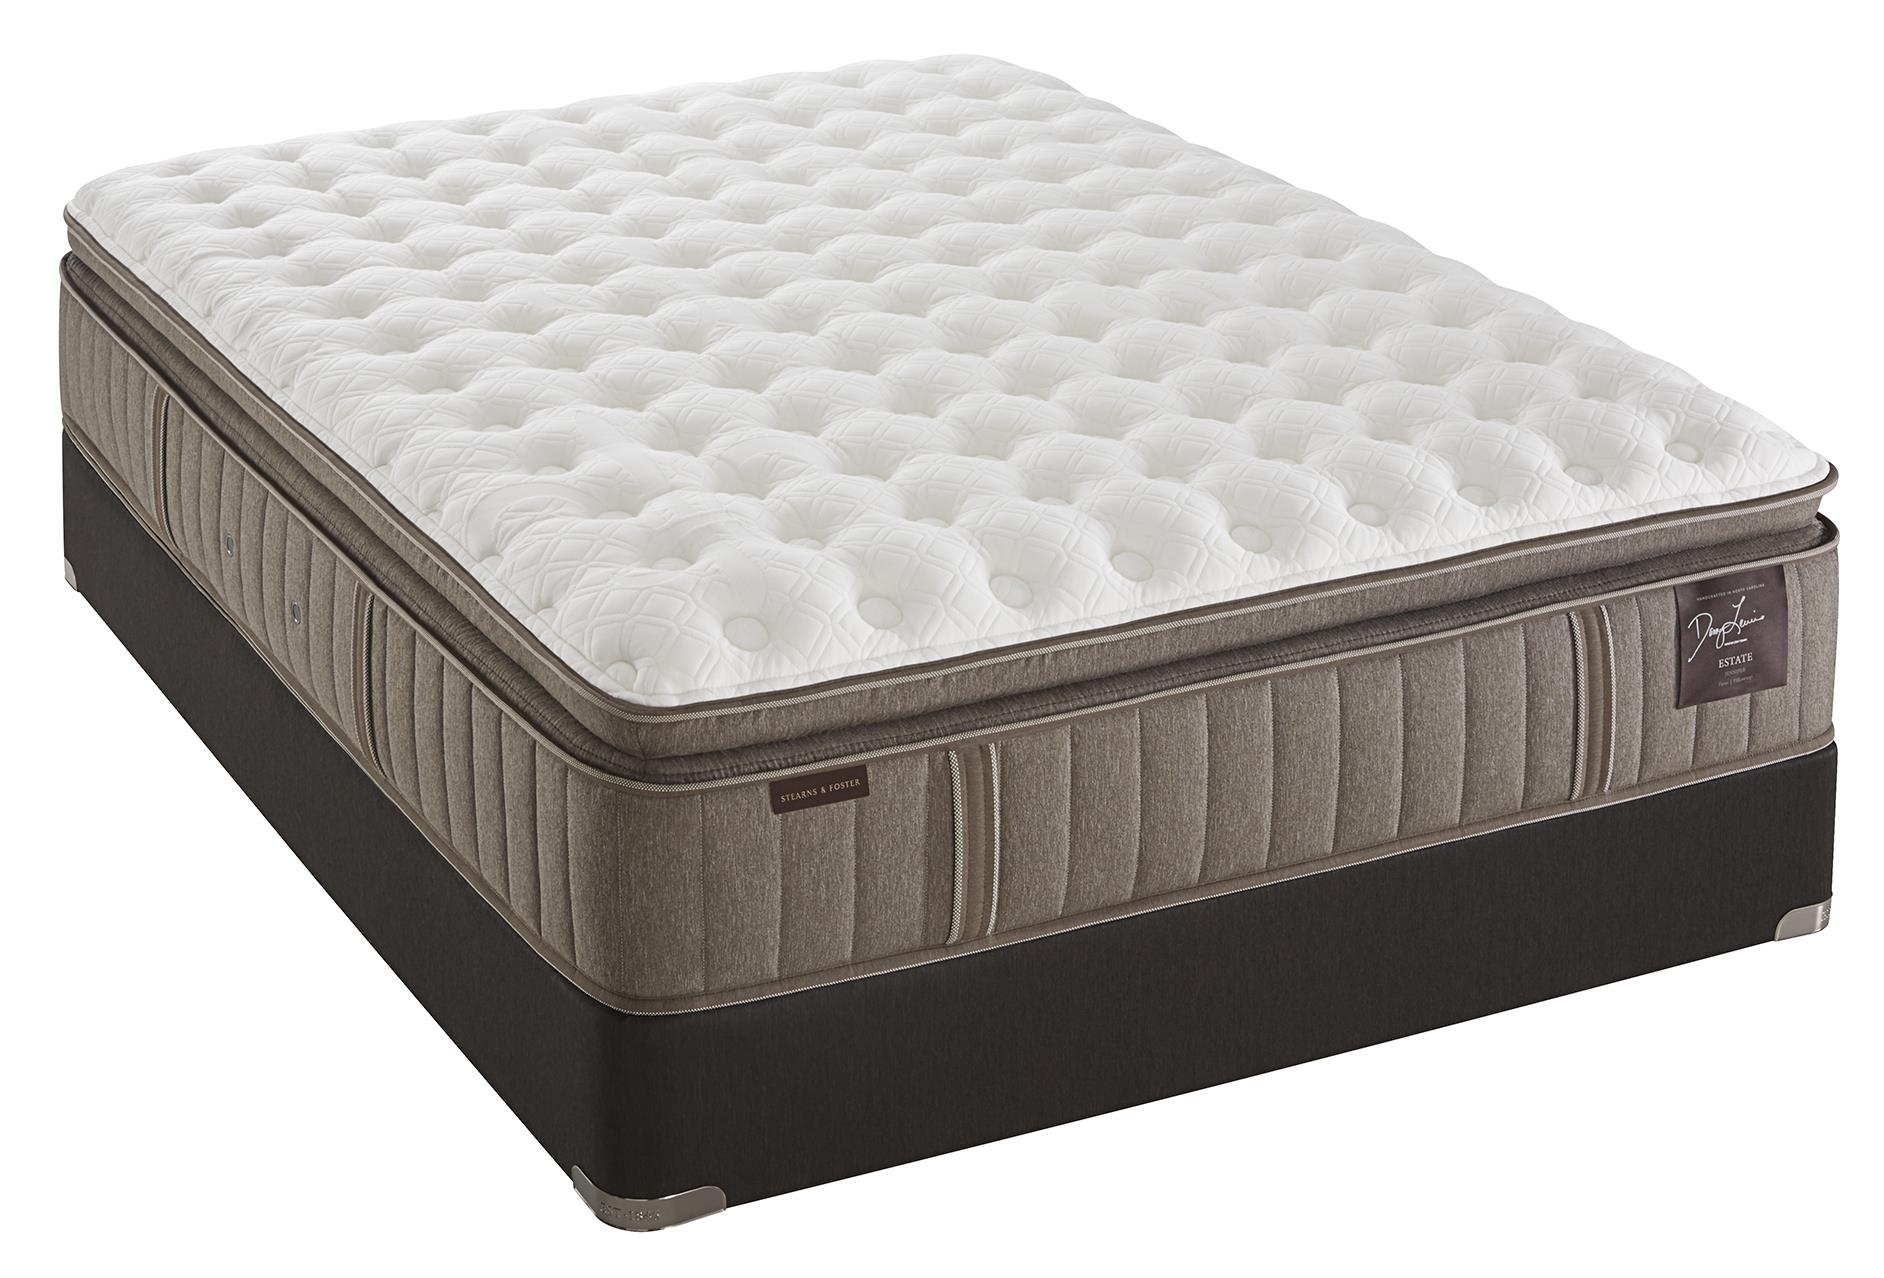 Stearns & Foster Oak Terrace Luxury Cushion Firm EPT Queen Cushion Firm Euro PT Mattress Set - Item Number: CushFirmEPT-Q+Ease-Q